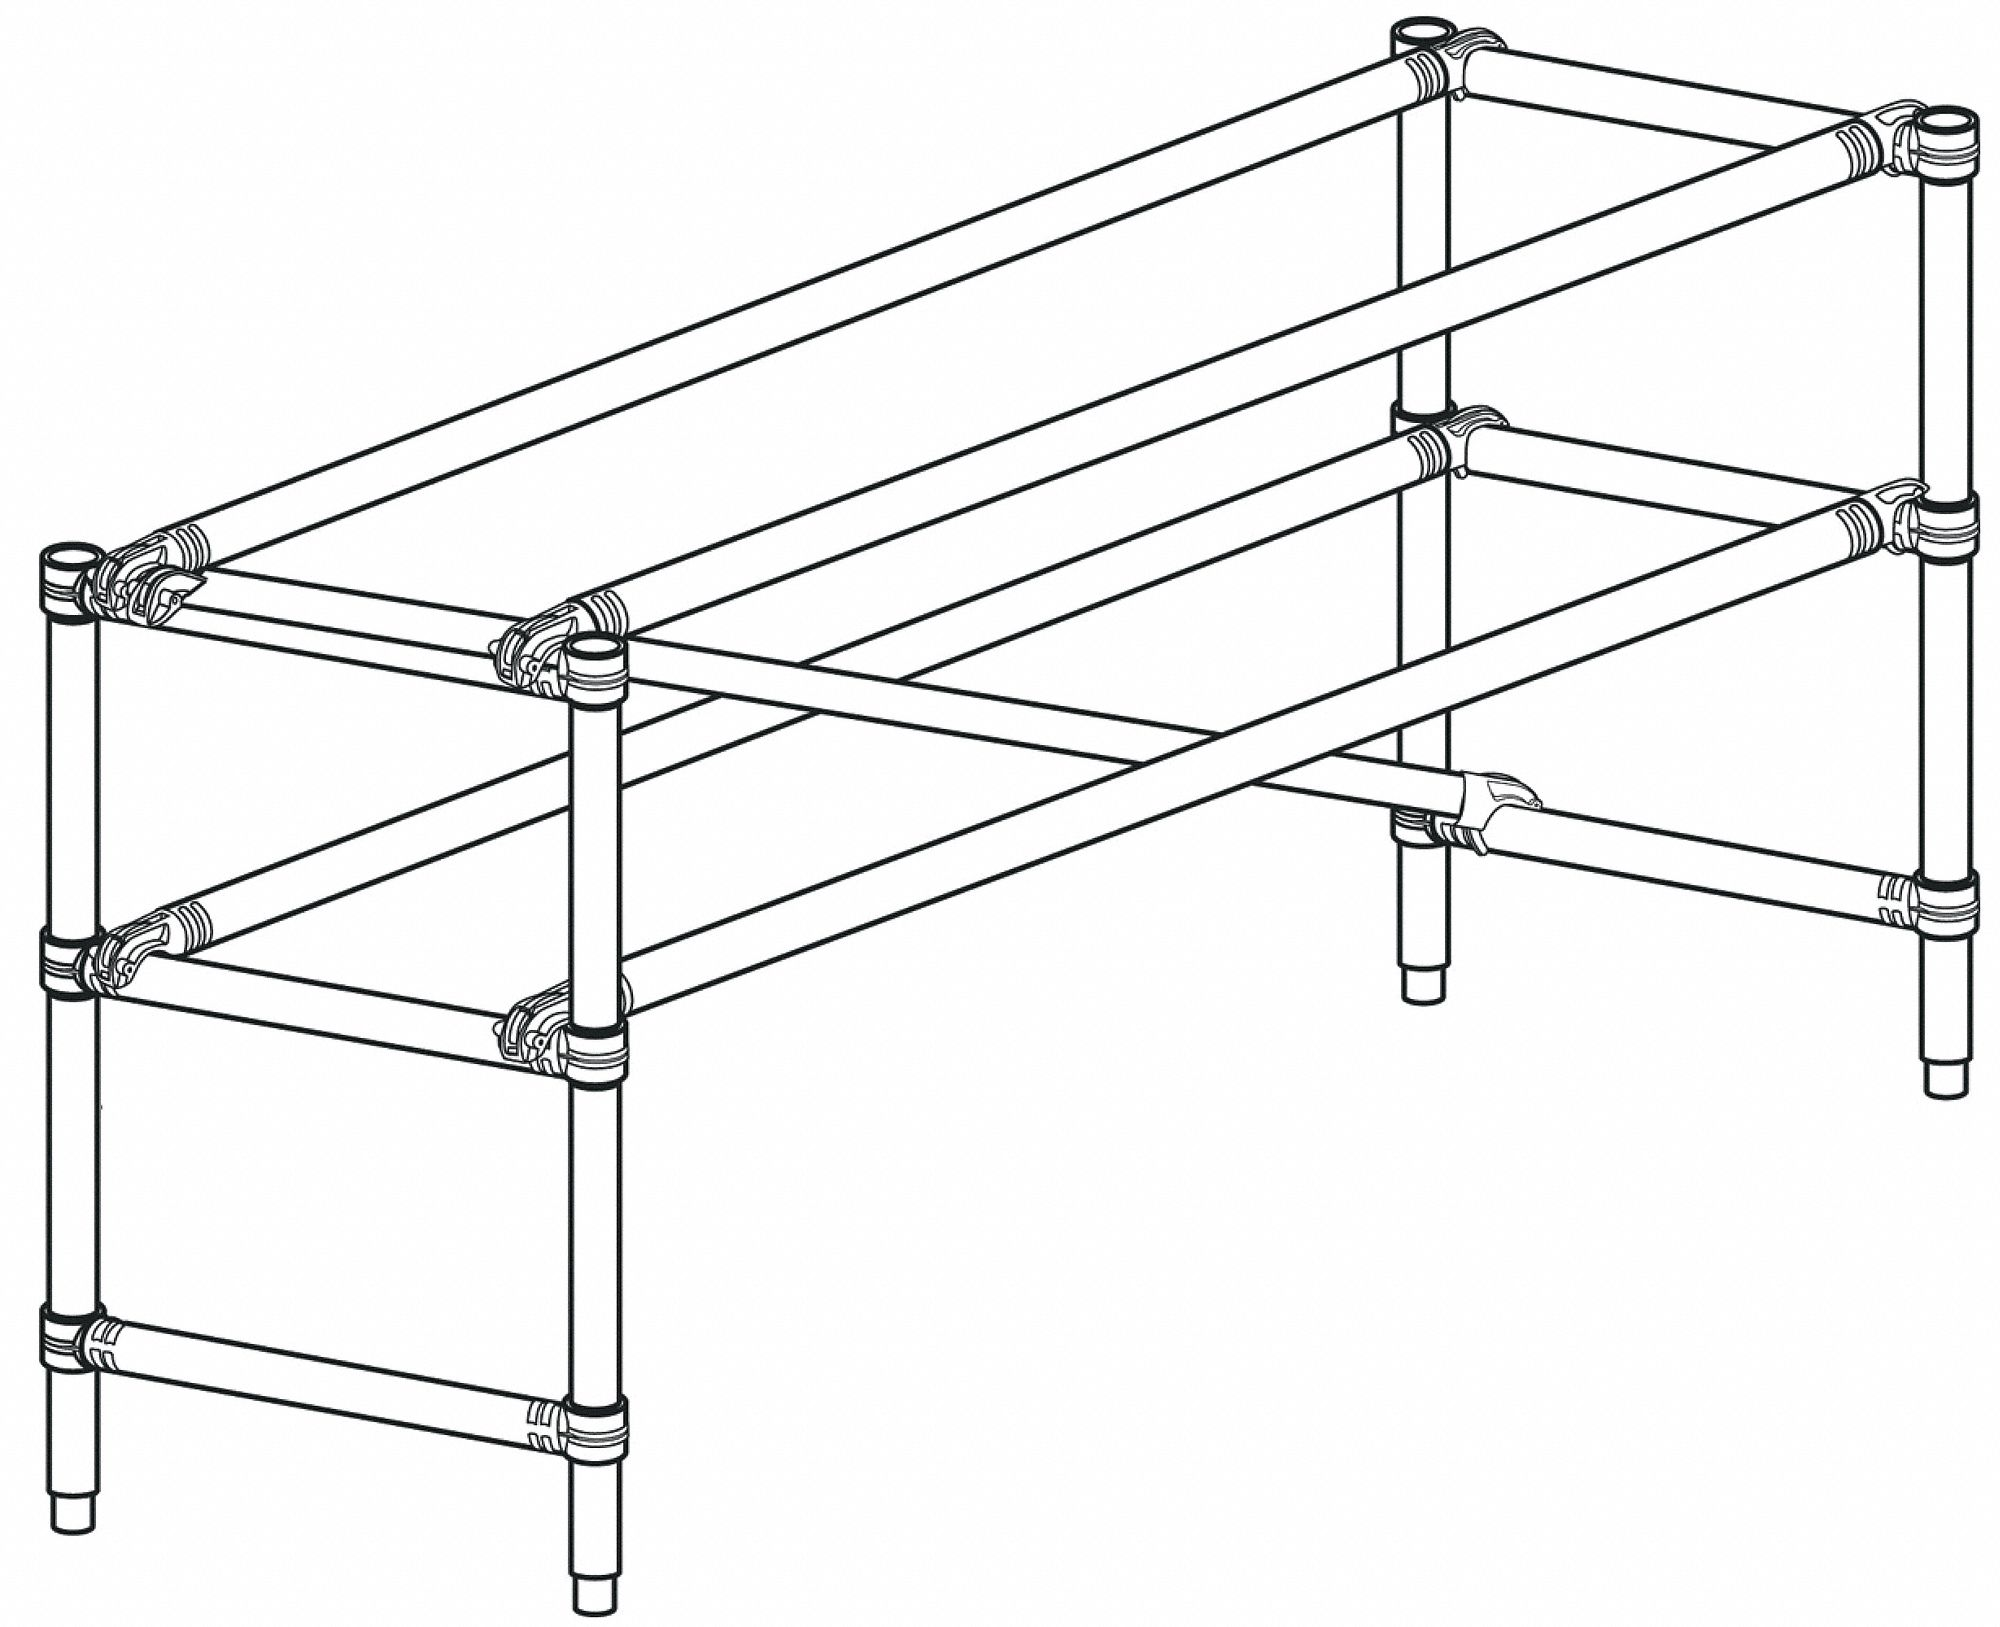 werner guard rail  42 u0026quot  overall height  29 u0026quot  overall width